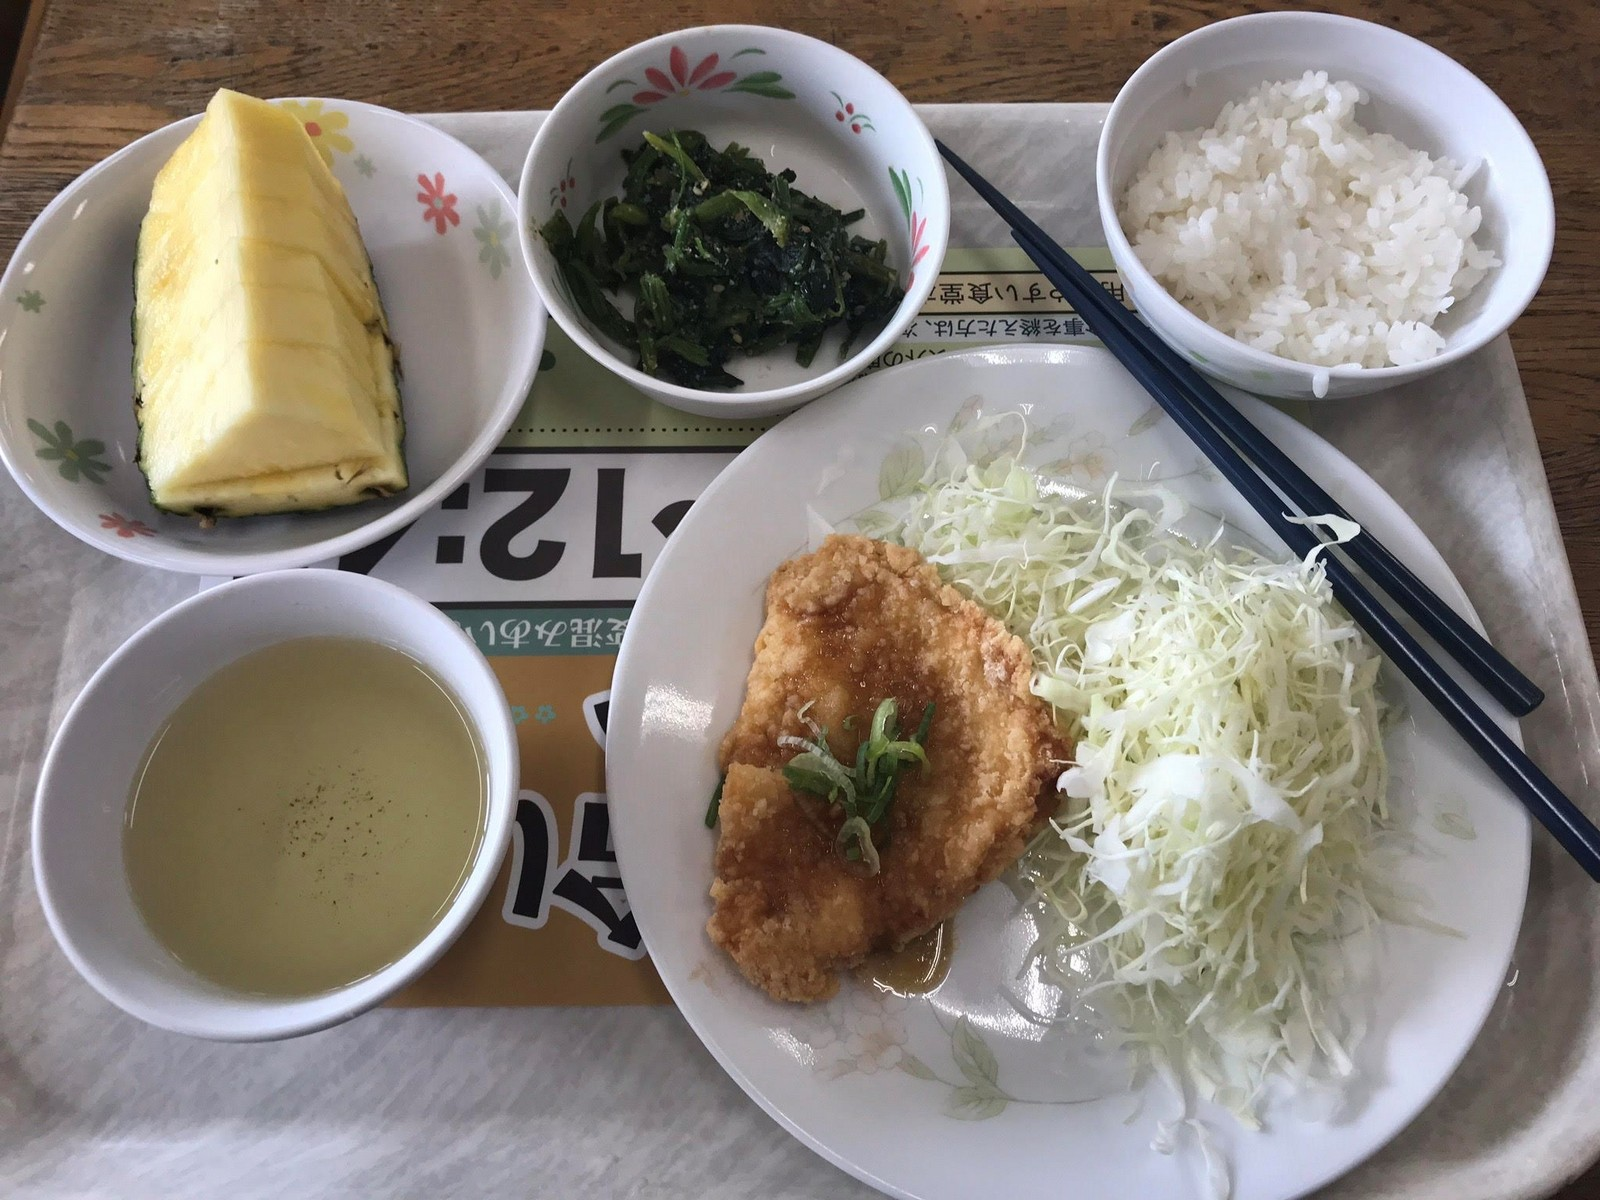 Plate of Japanese food, fruit and vegetables, rice, fried fish, chopsticks on plate.